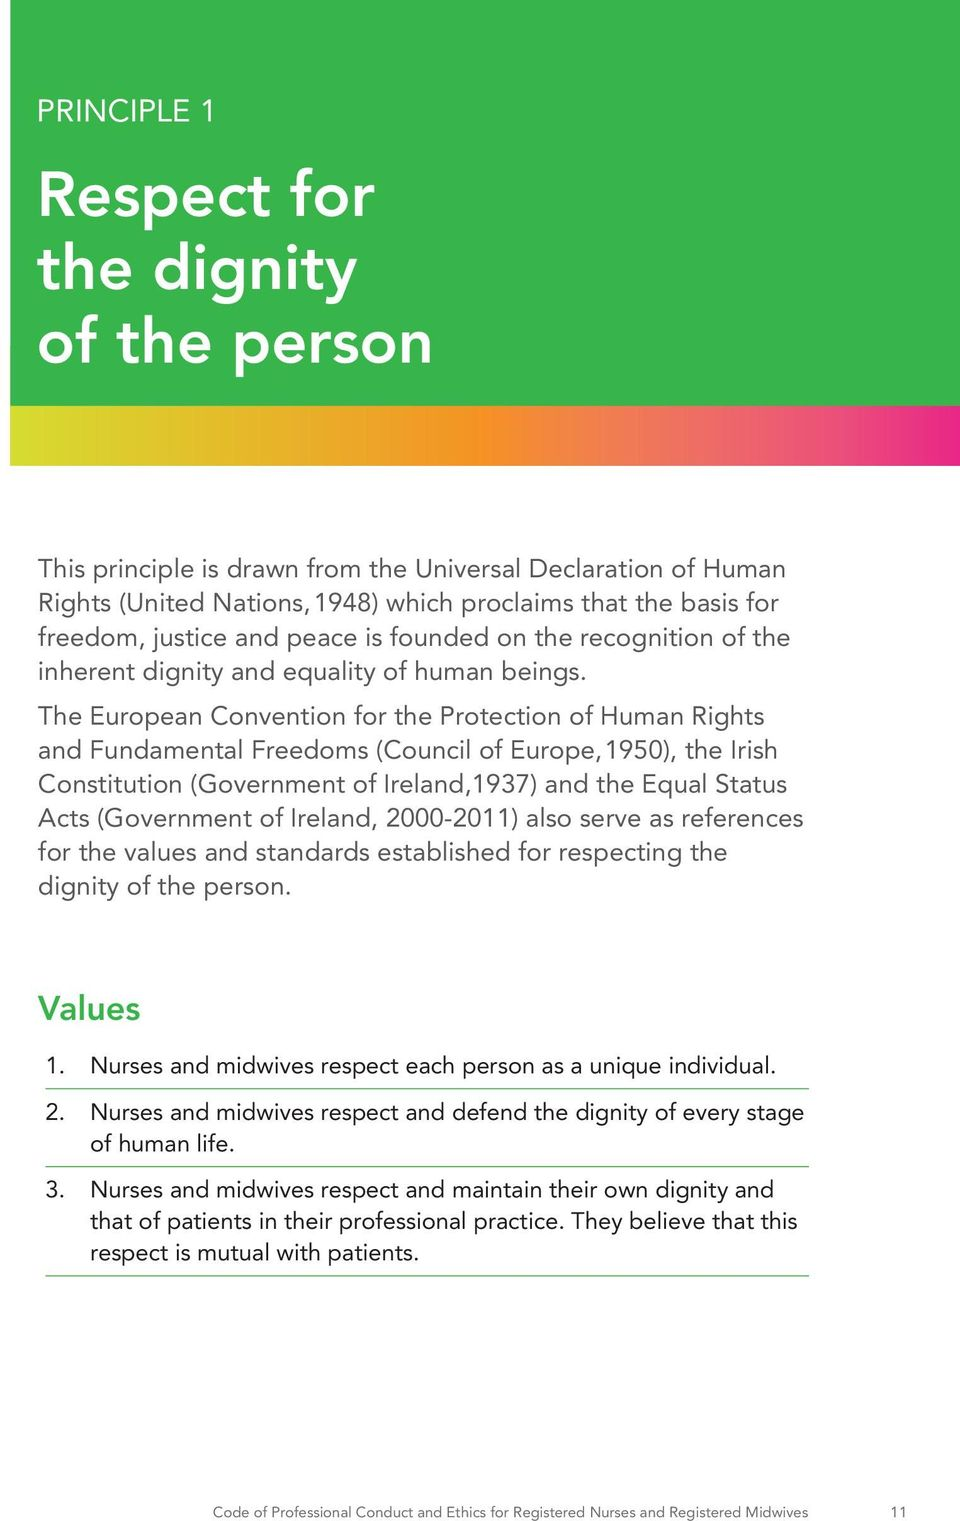 The European Convention for the Protection of Human Rights and Fundamental Freedoms (Council of Europe, 1950), the Irish Constitution (Government of Ireland,1937) and the Equal Status Acts